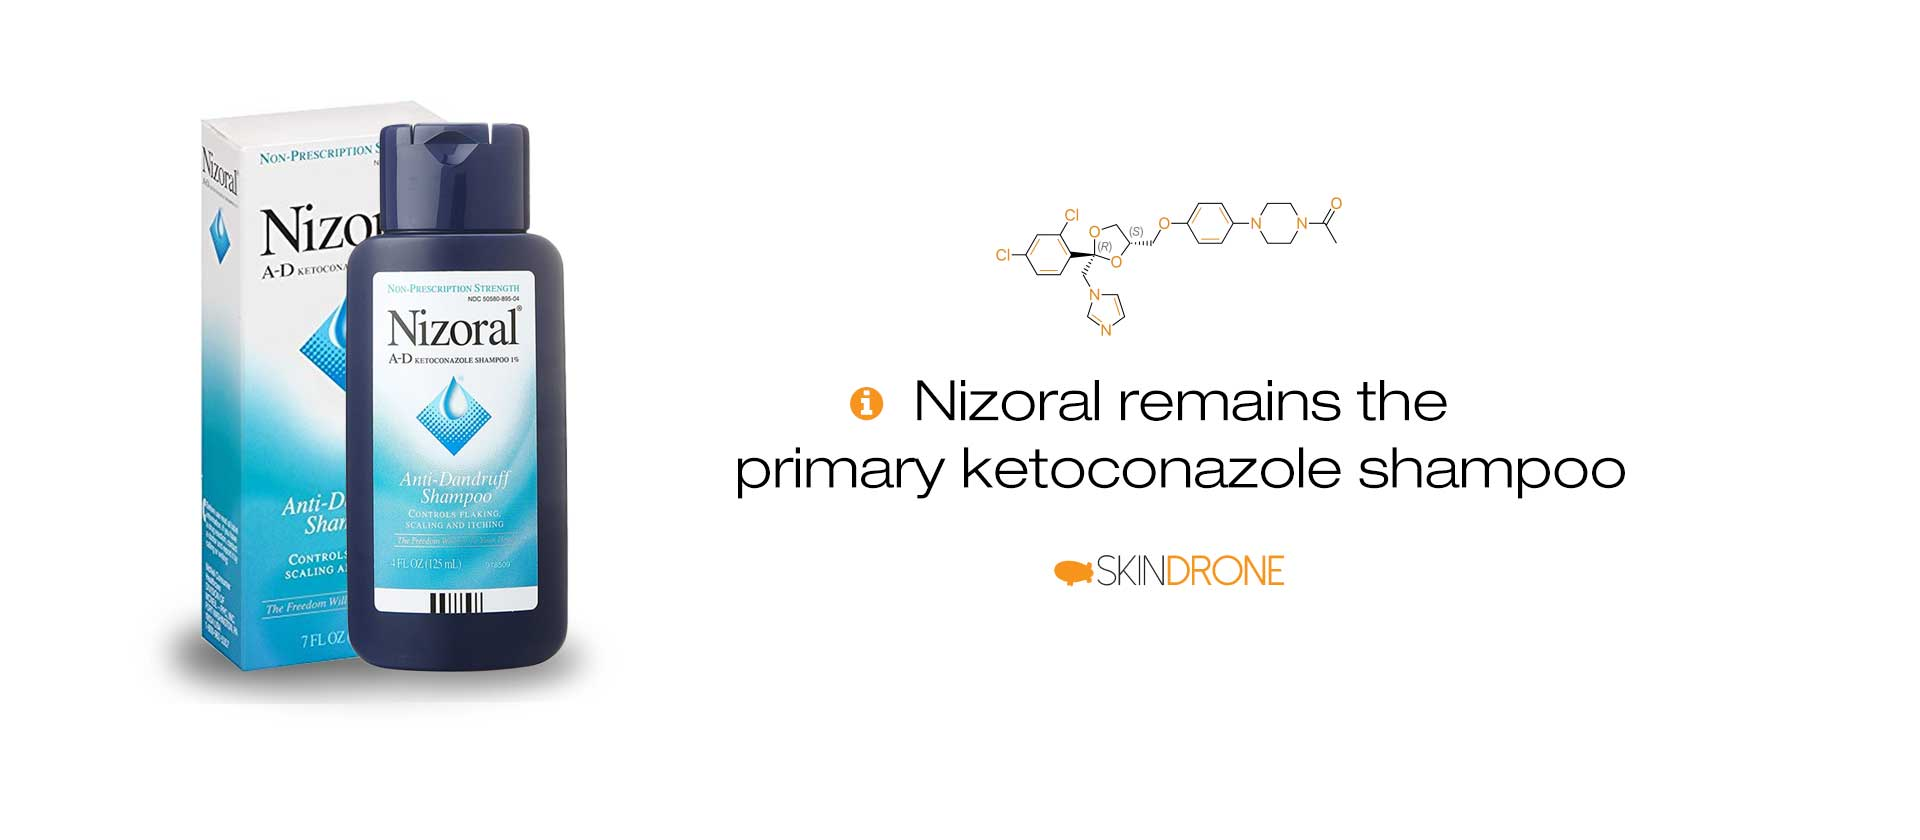 Nizoral anti-dandruff shampoo is the primary ketoconazole option for scalp seborrheic dermatitis